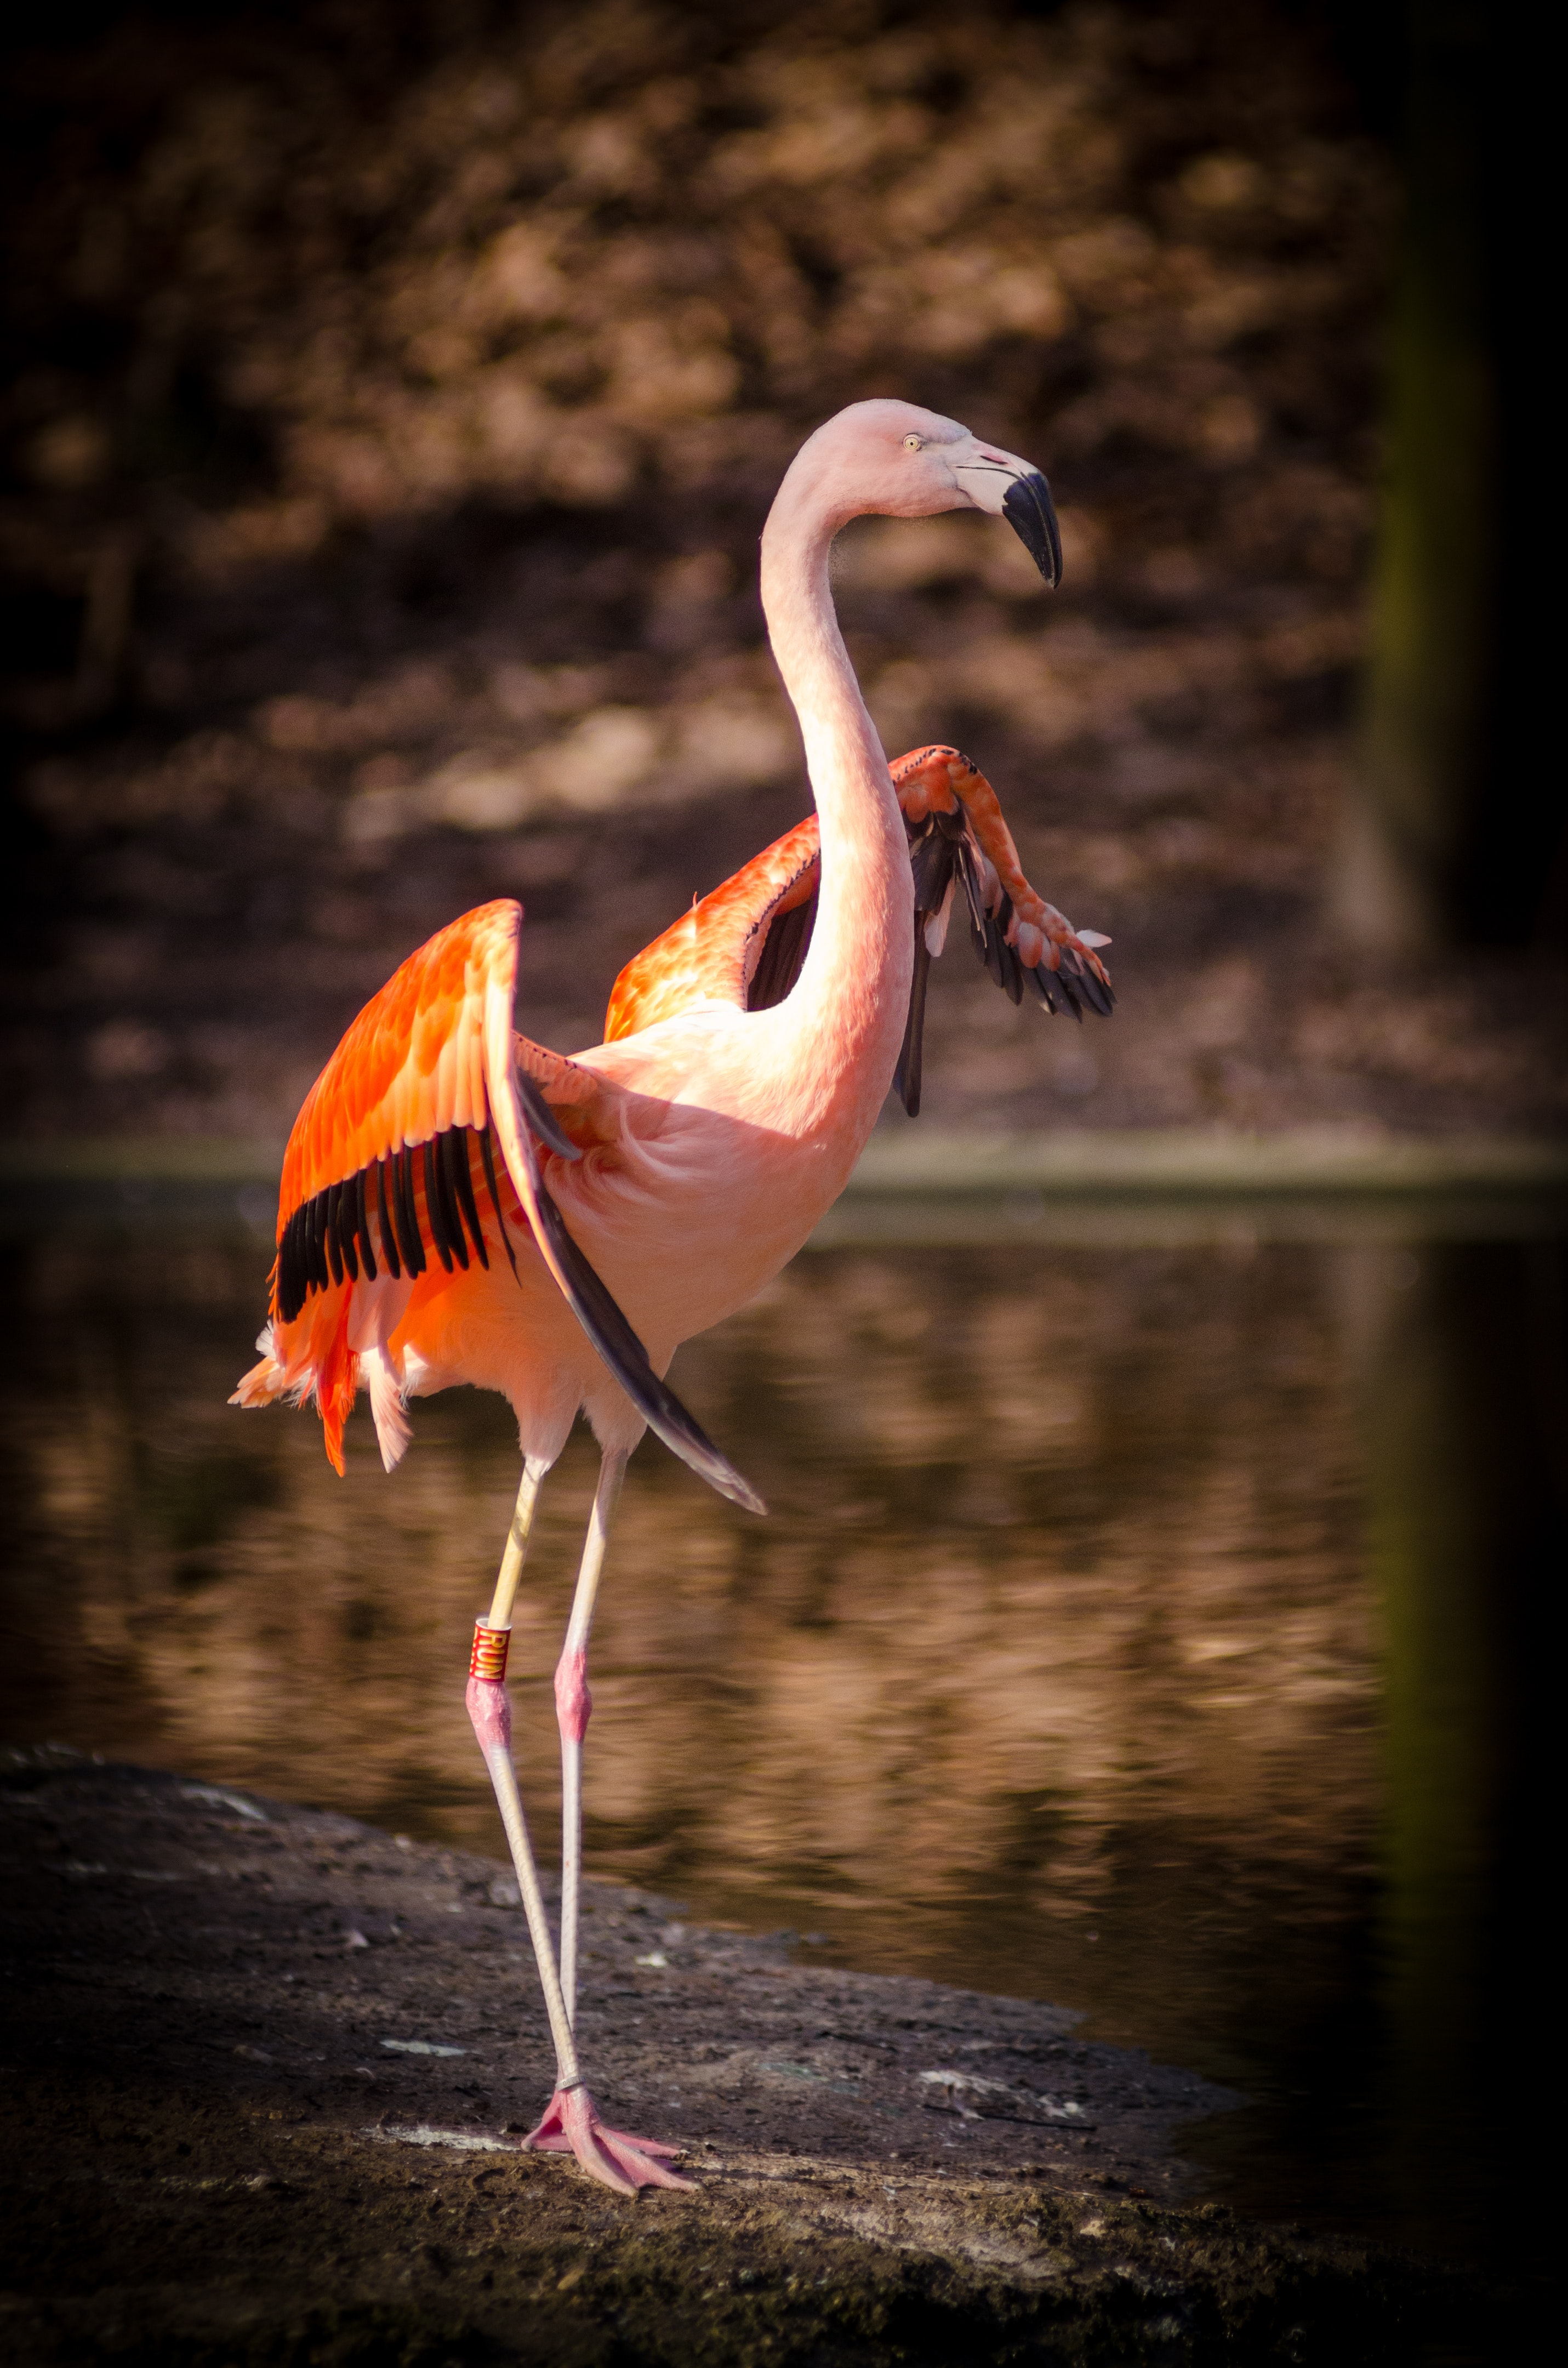 Pink and Red Flamingo Standing Near Body of, Animal, Bird, Feathers, Flamingo, HQ Photo